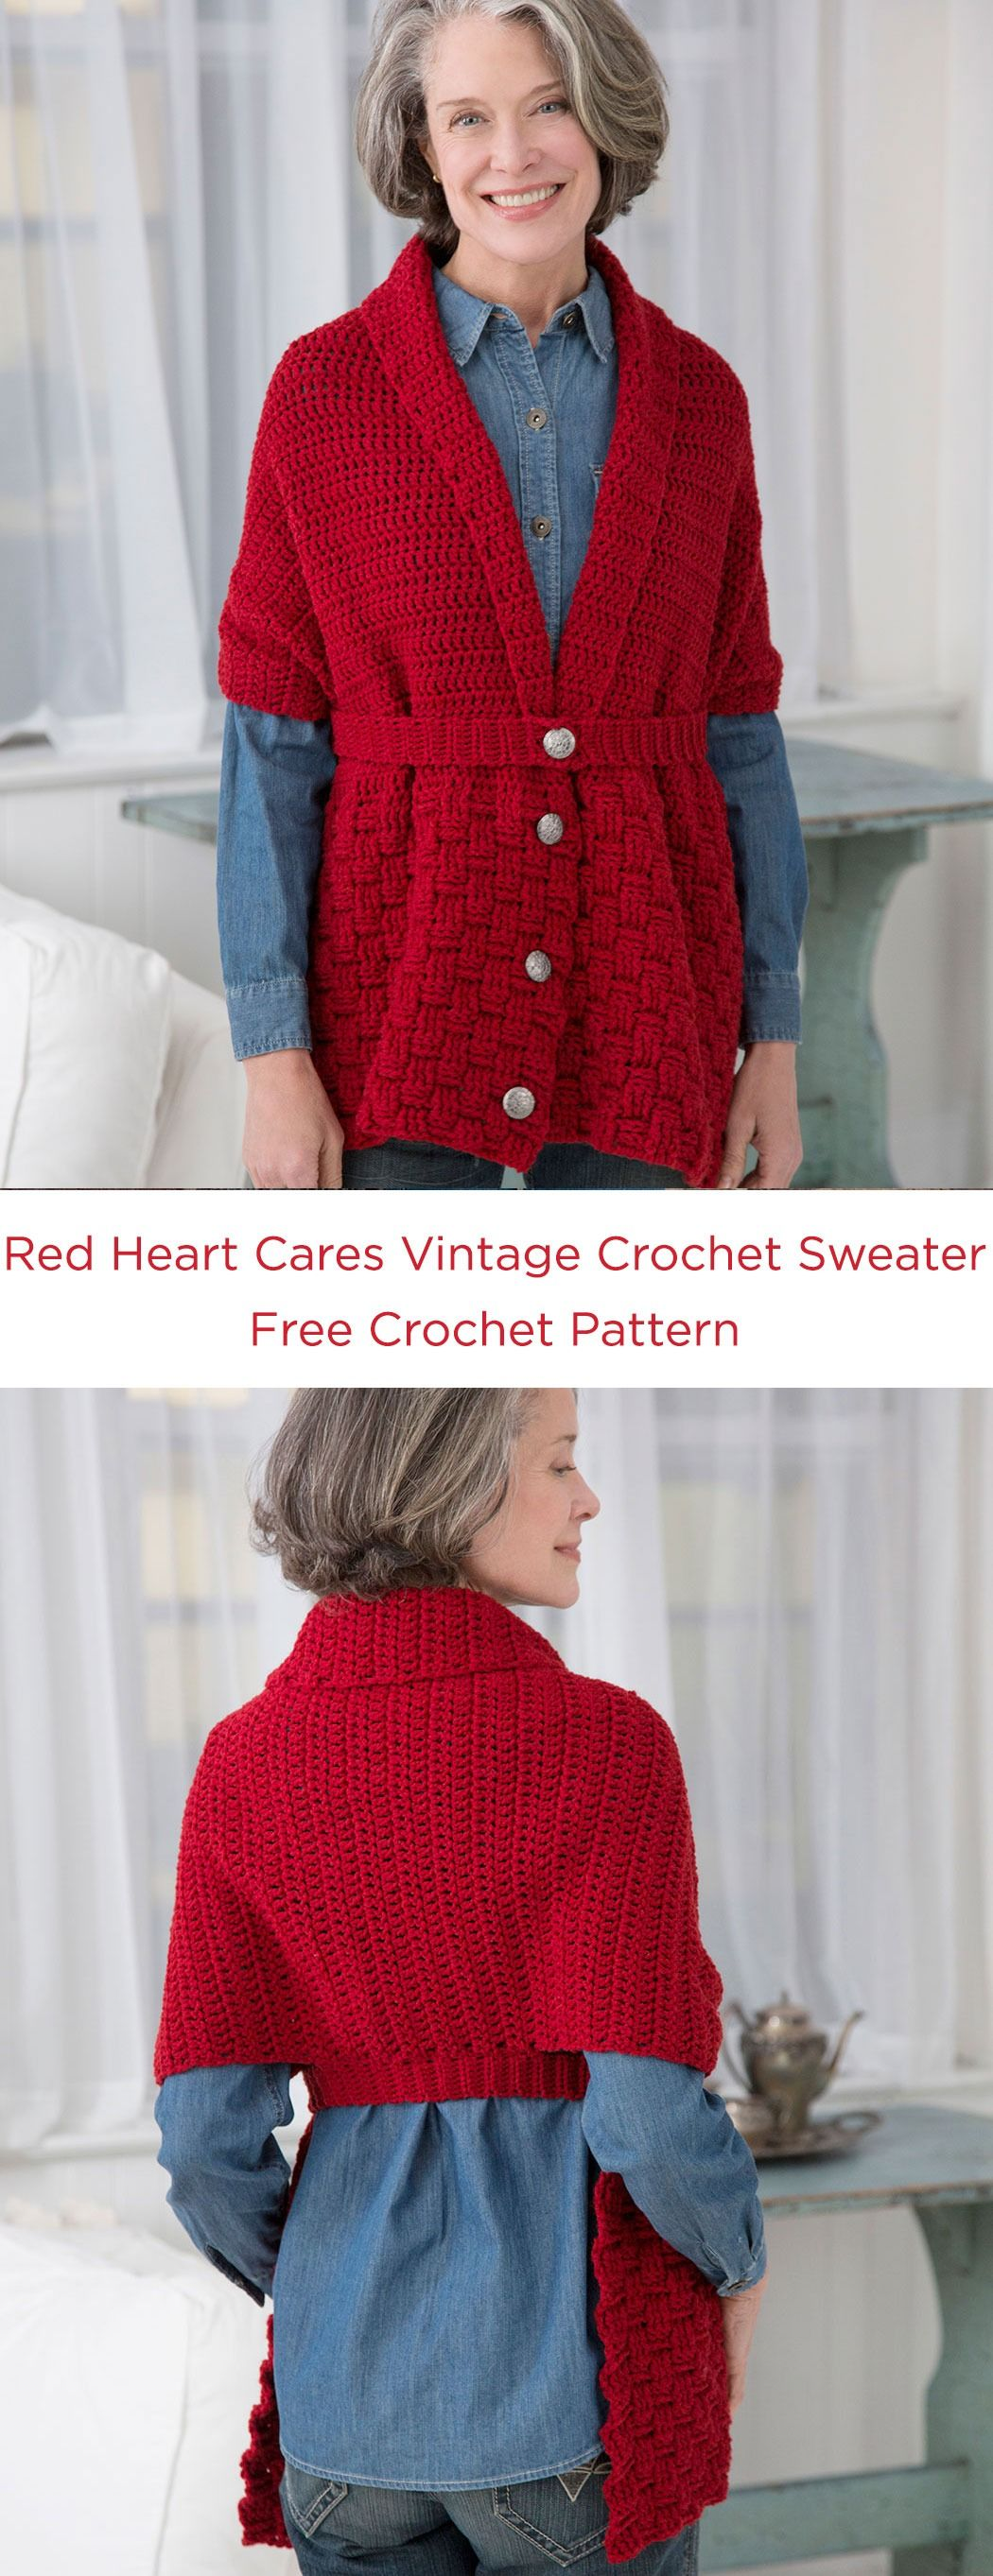 Red heart cares vintage crochet sweater free crochet pattern in red heart cares vintage crochet sweater free crochet pattern in red heart yarns this modern crochet wrap was actually inspired by a sweater scarf from bankloansurffo Image collections